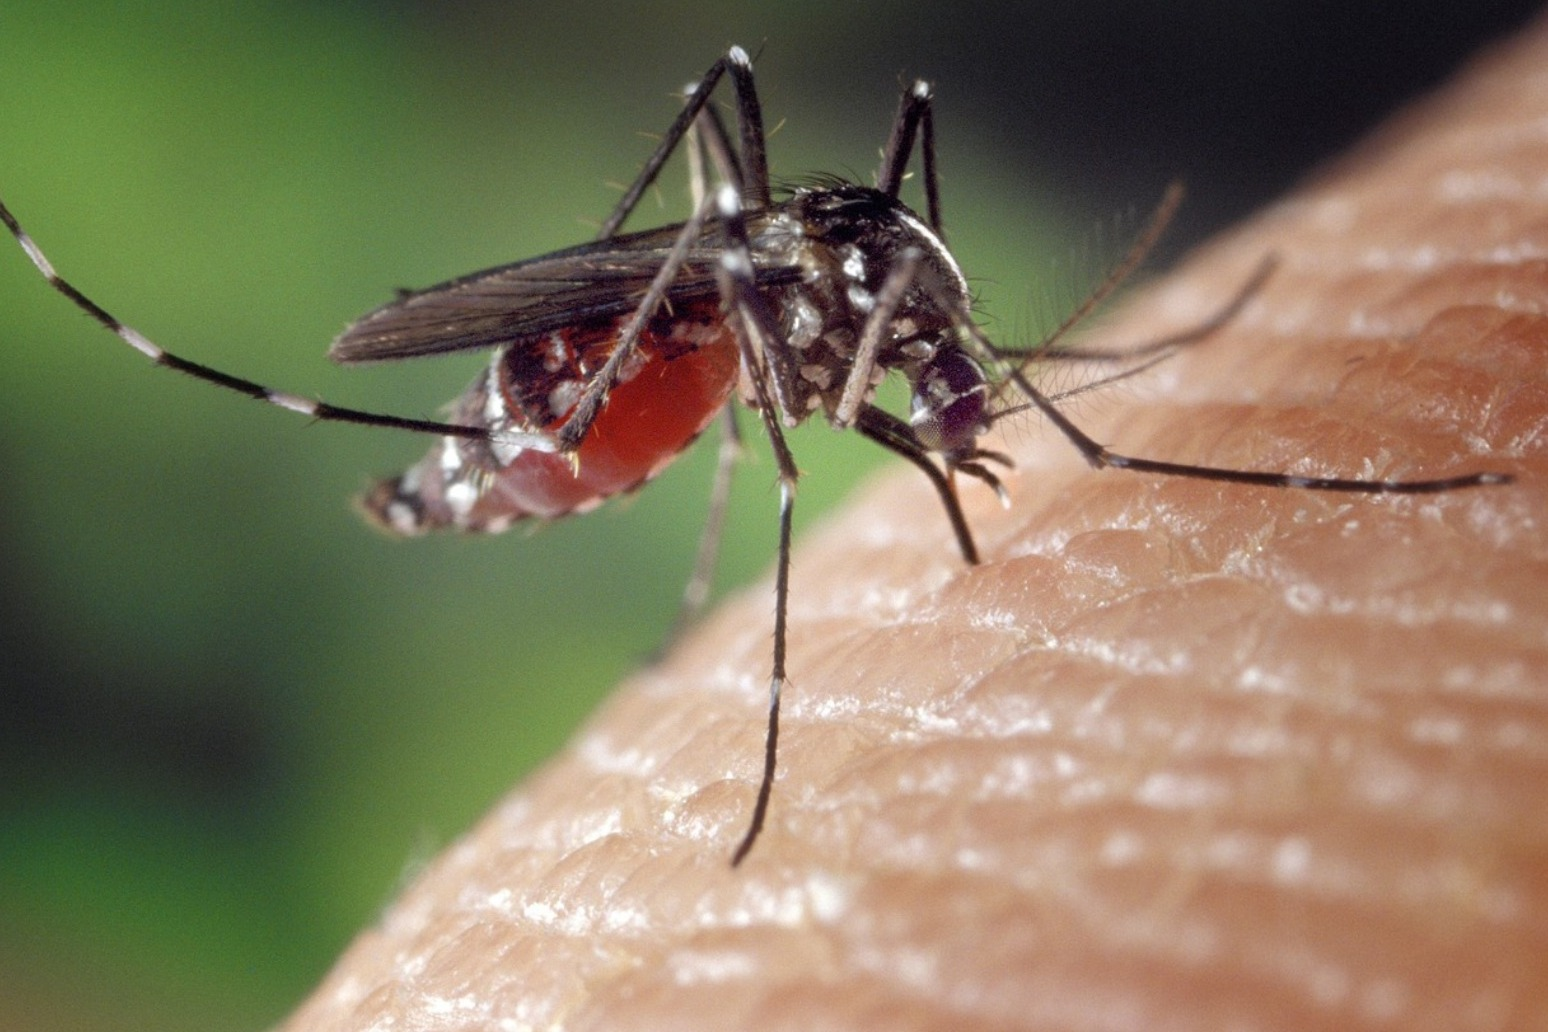 Malaria parasites becoming resistant to drugs